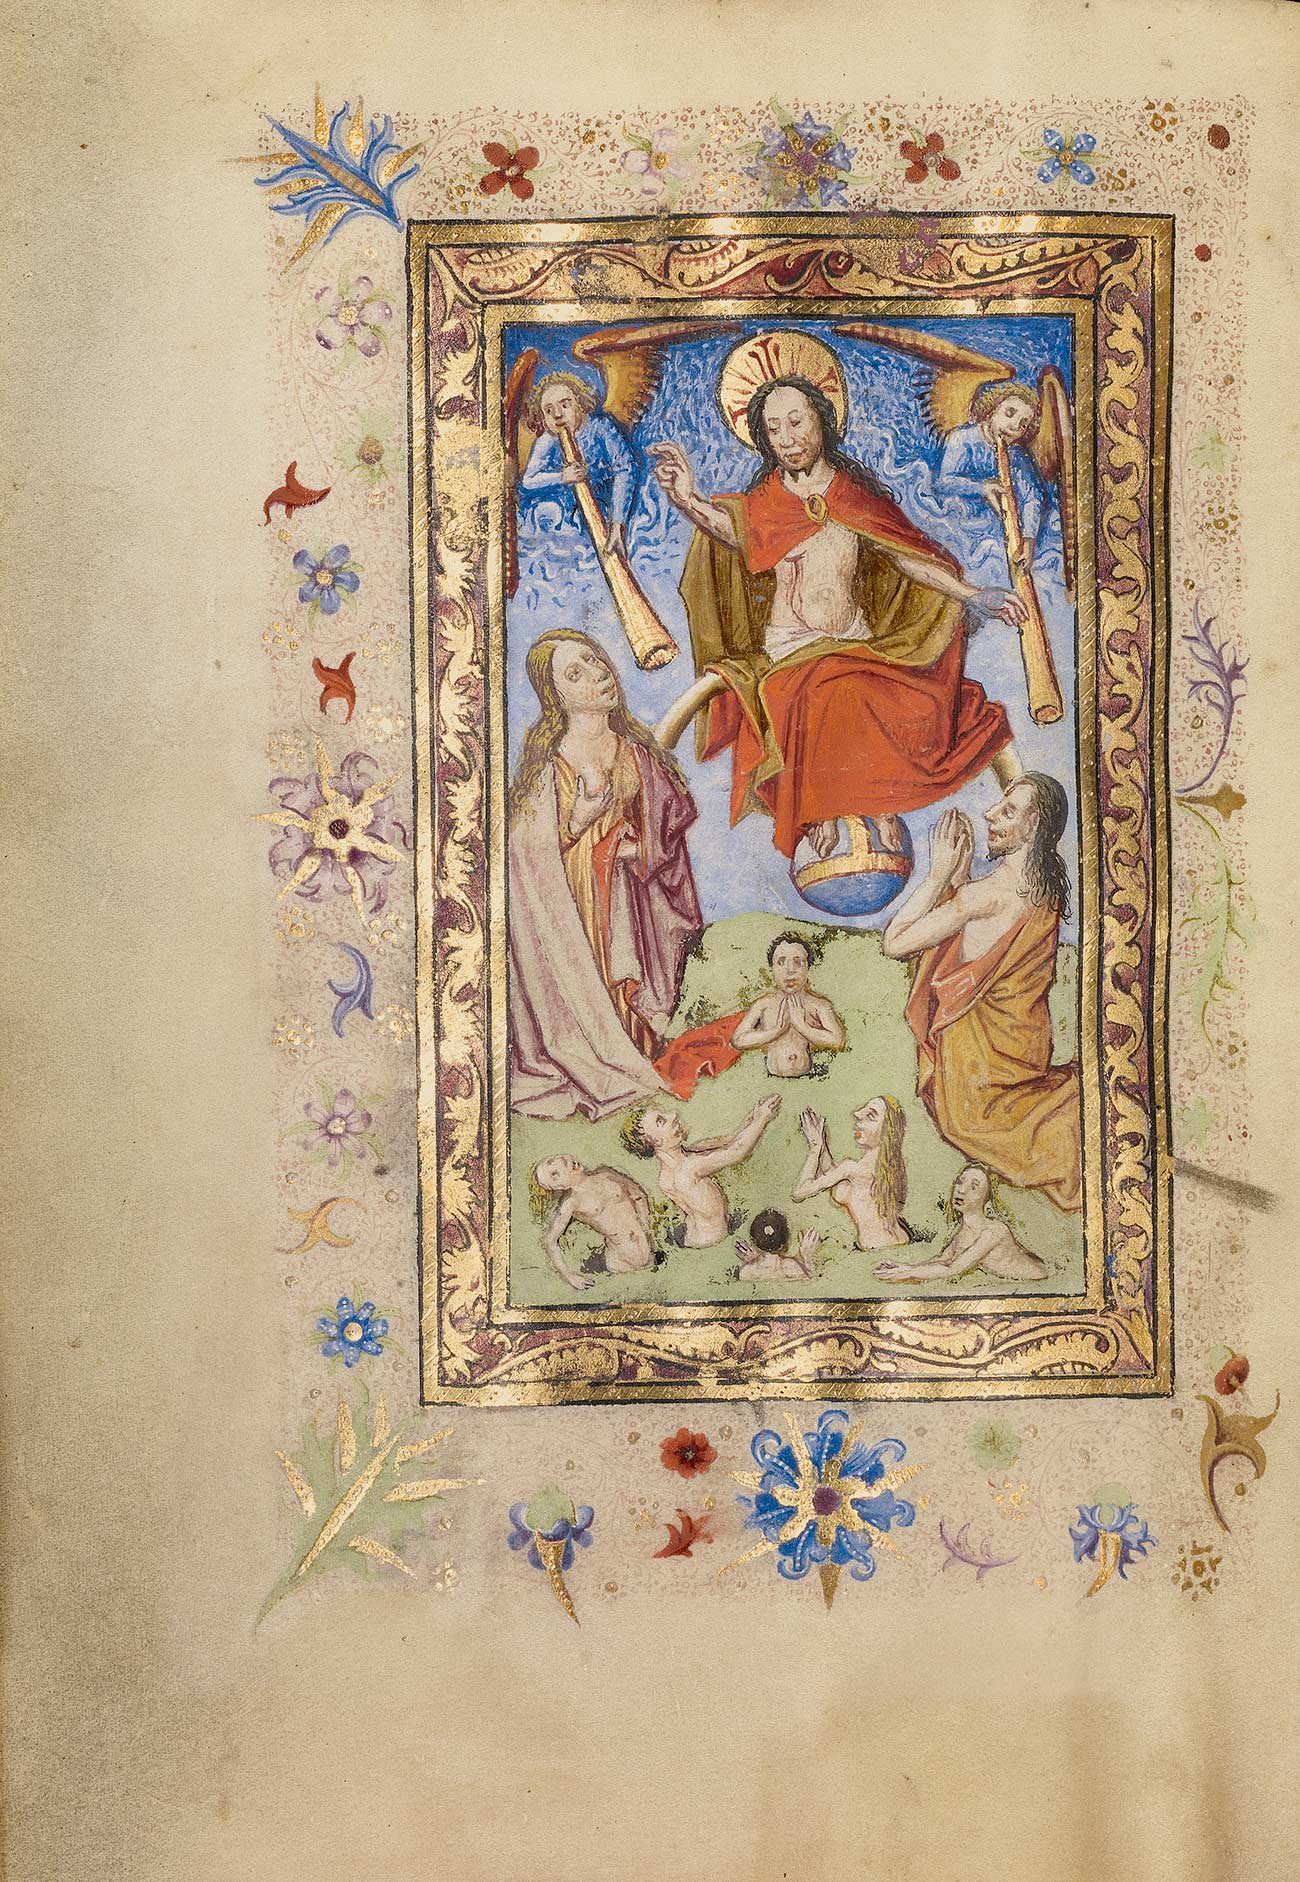 Jesus floats in the sky with two angels blowing horns while two robed people and several nude figures pray below him.